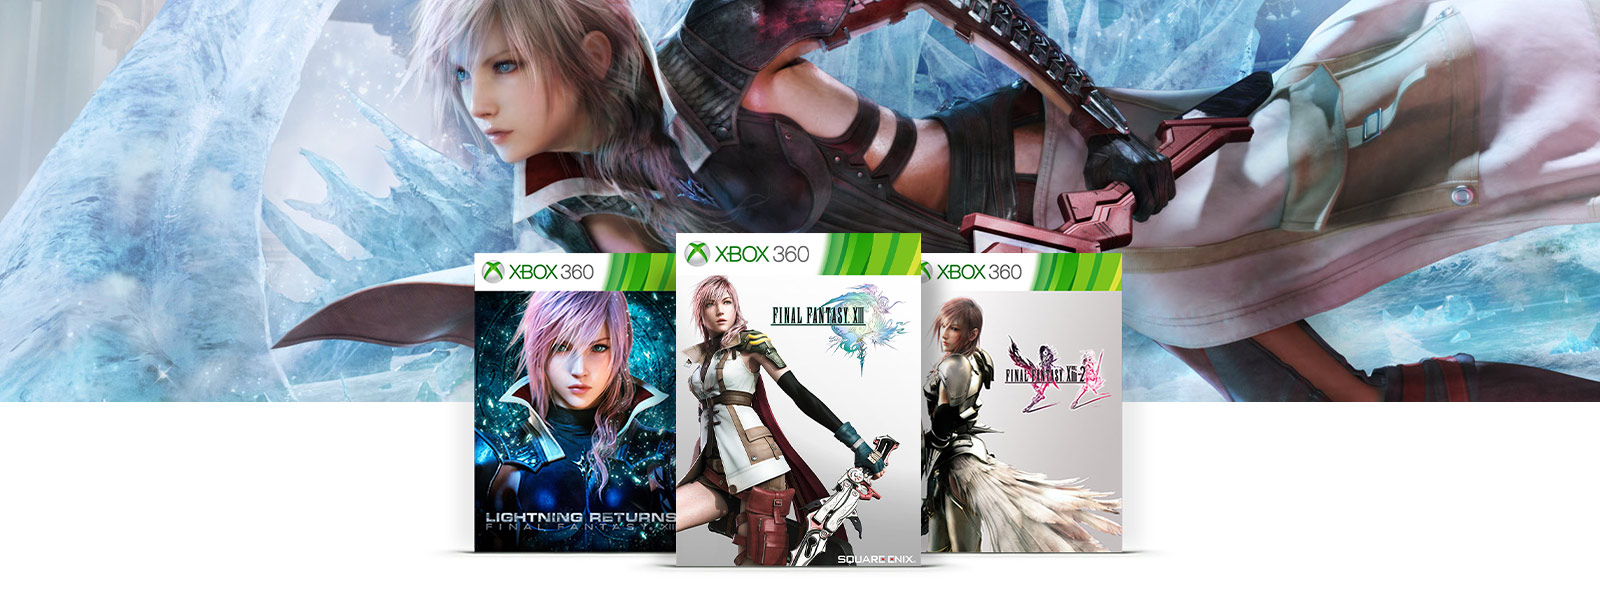 Imagem da caixa do FINAL FANTASY XIII, FINAL FANTASY XIII-2 e LIGHTNING RETURNS FINAL FANTASY mostrada sobre o personagem Lightning